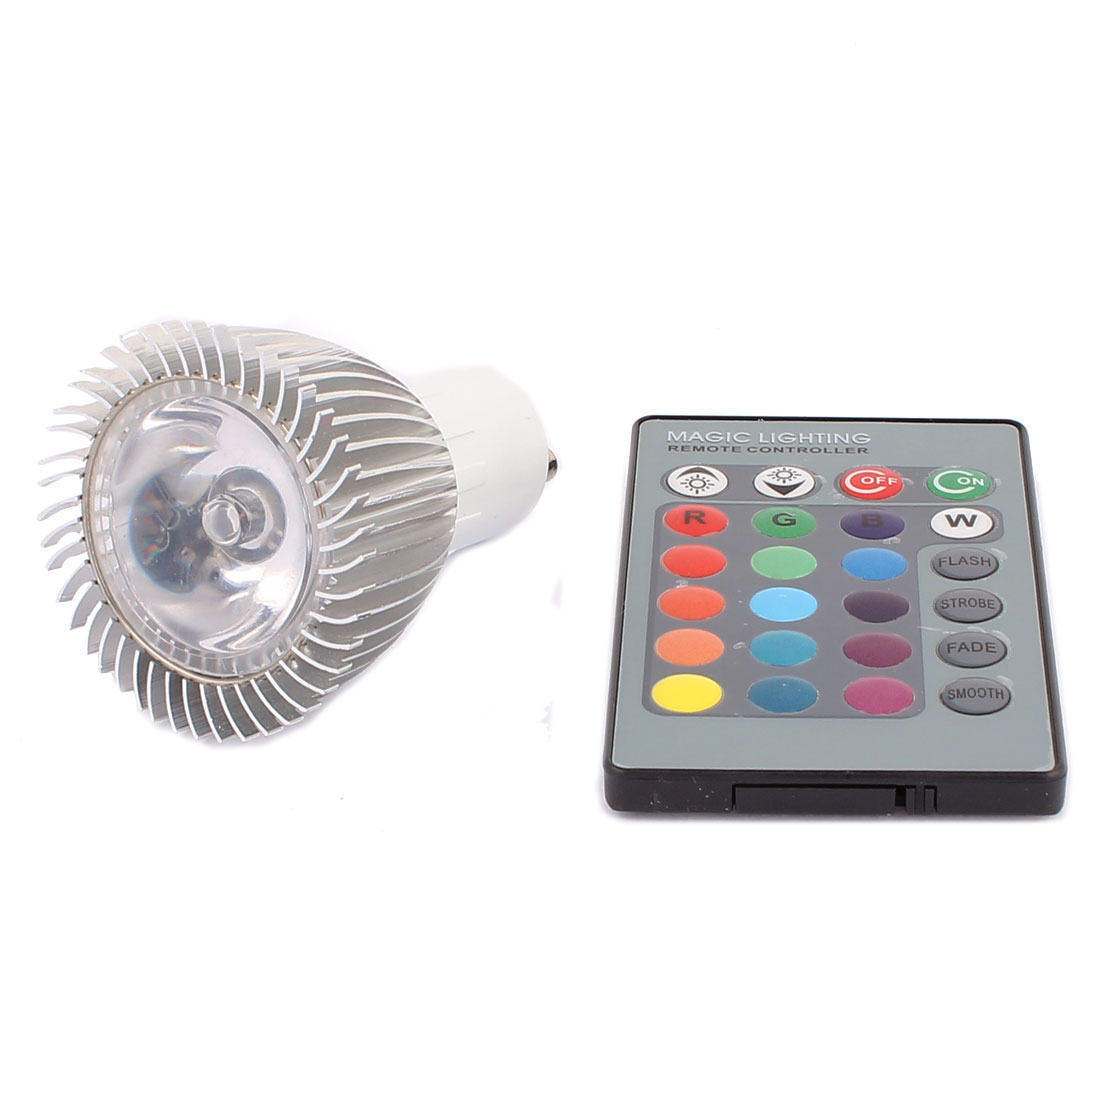 GU10 Adapter Decor Spotlight Light RGB LED Lamp Bulb 3W AC 85V-265V w Remote Controller